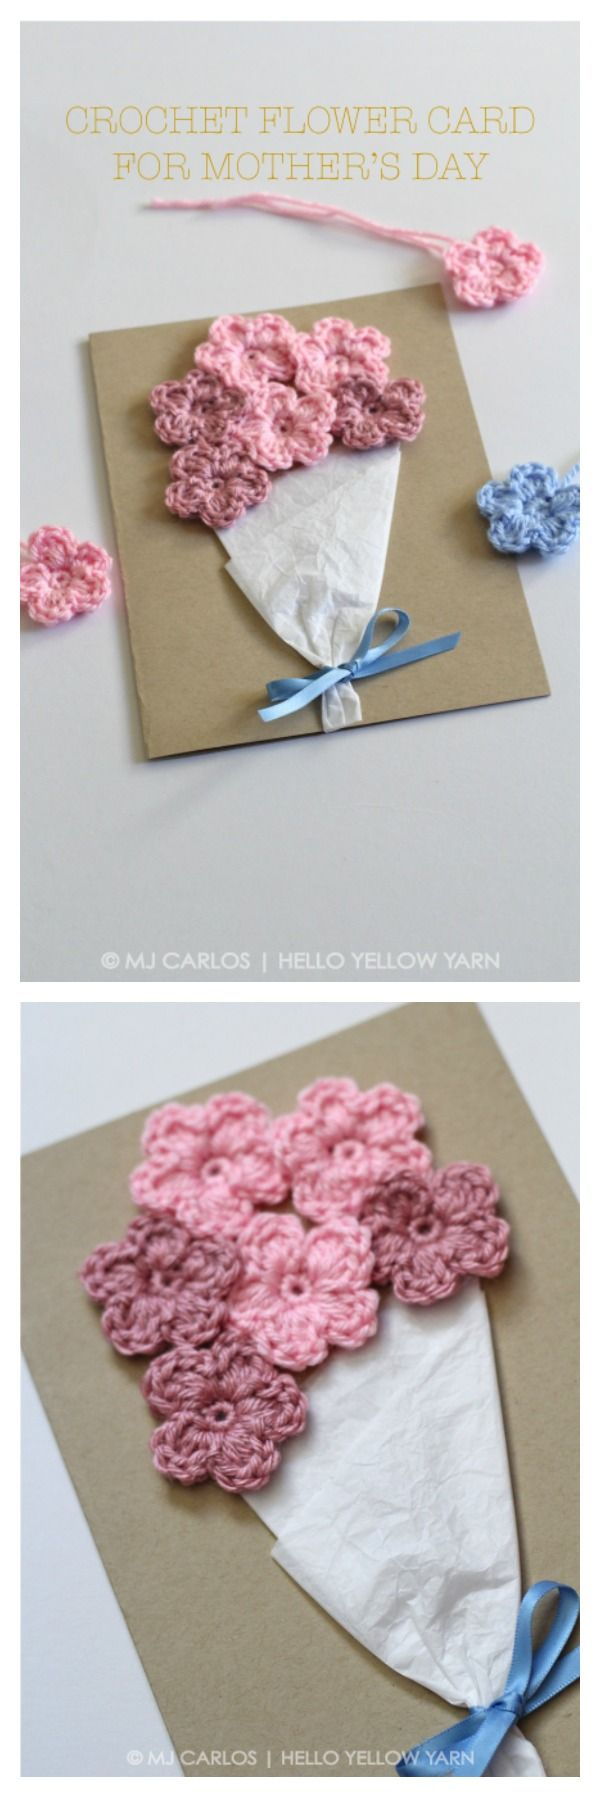 Crochet mothers day greeting card free patterns and ideas flower crochet flower card free pattern for mothers day izmirmasajfo Image collections